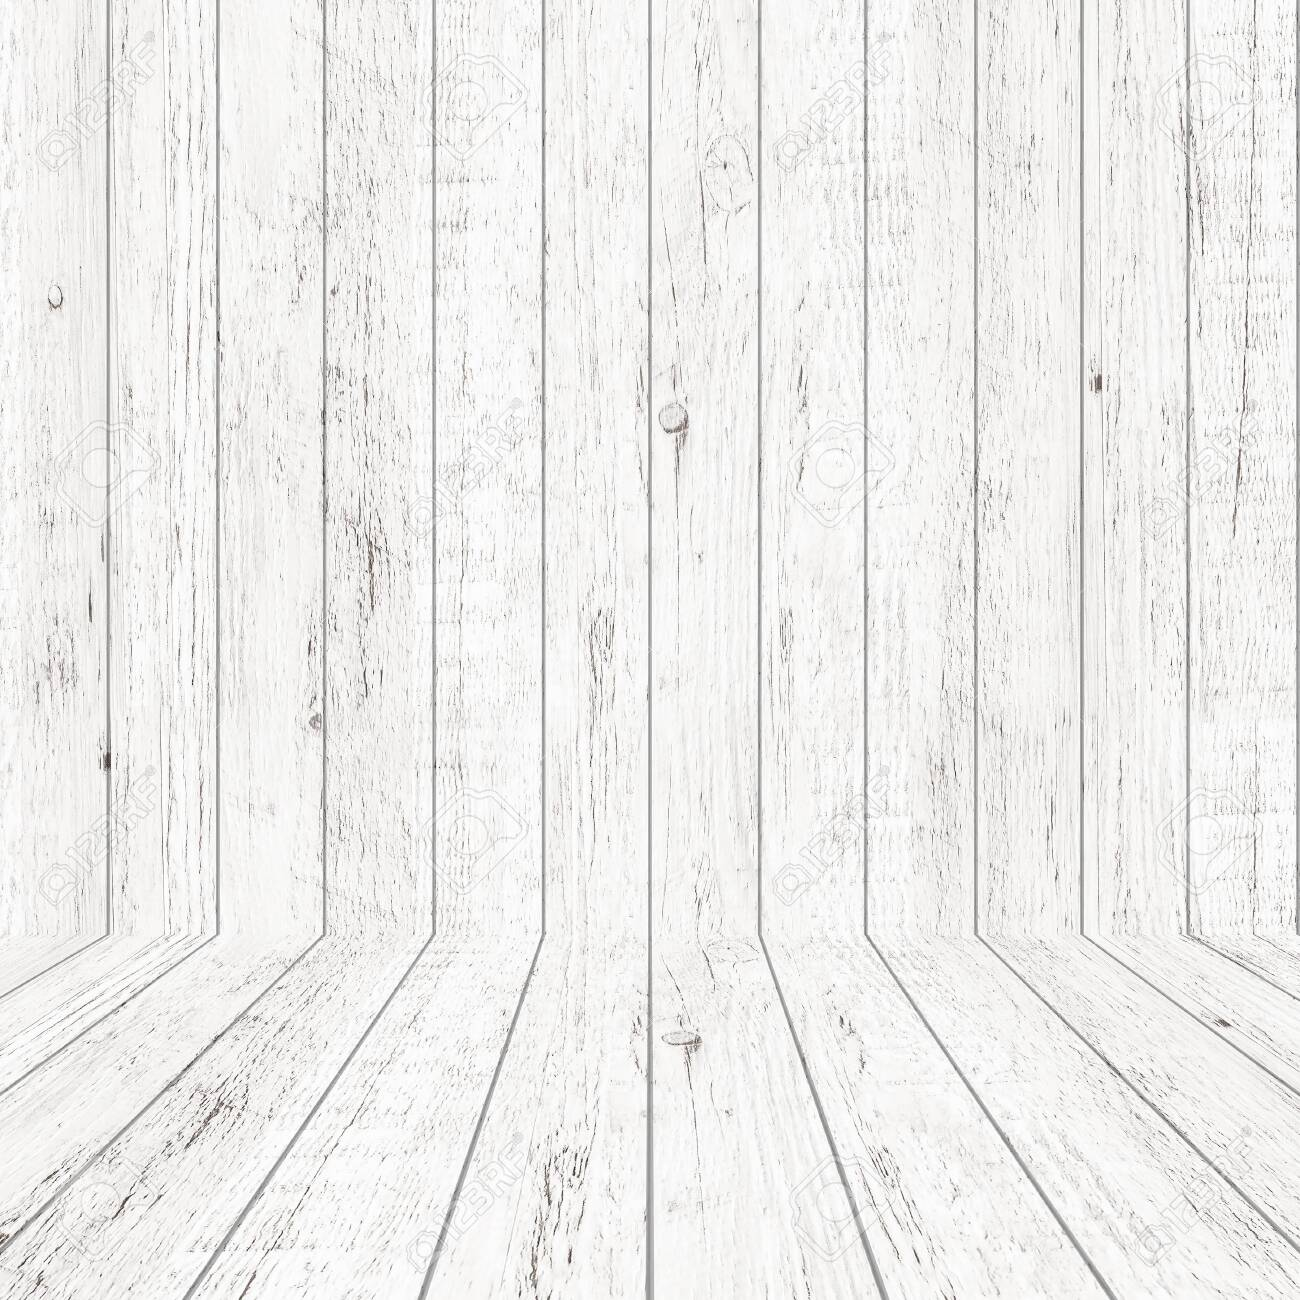 Vintage wood pattern texture in perspective view for background. Empty wooden room space background. - 121650884